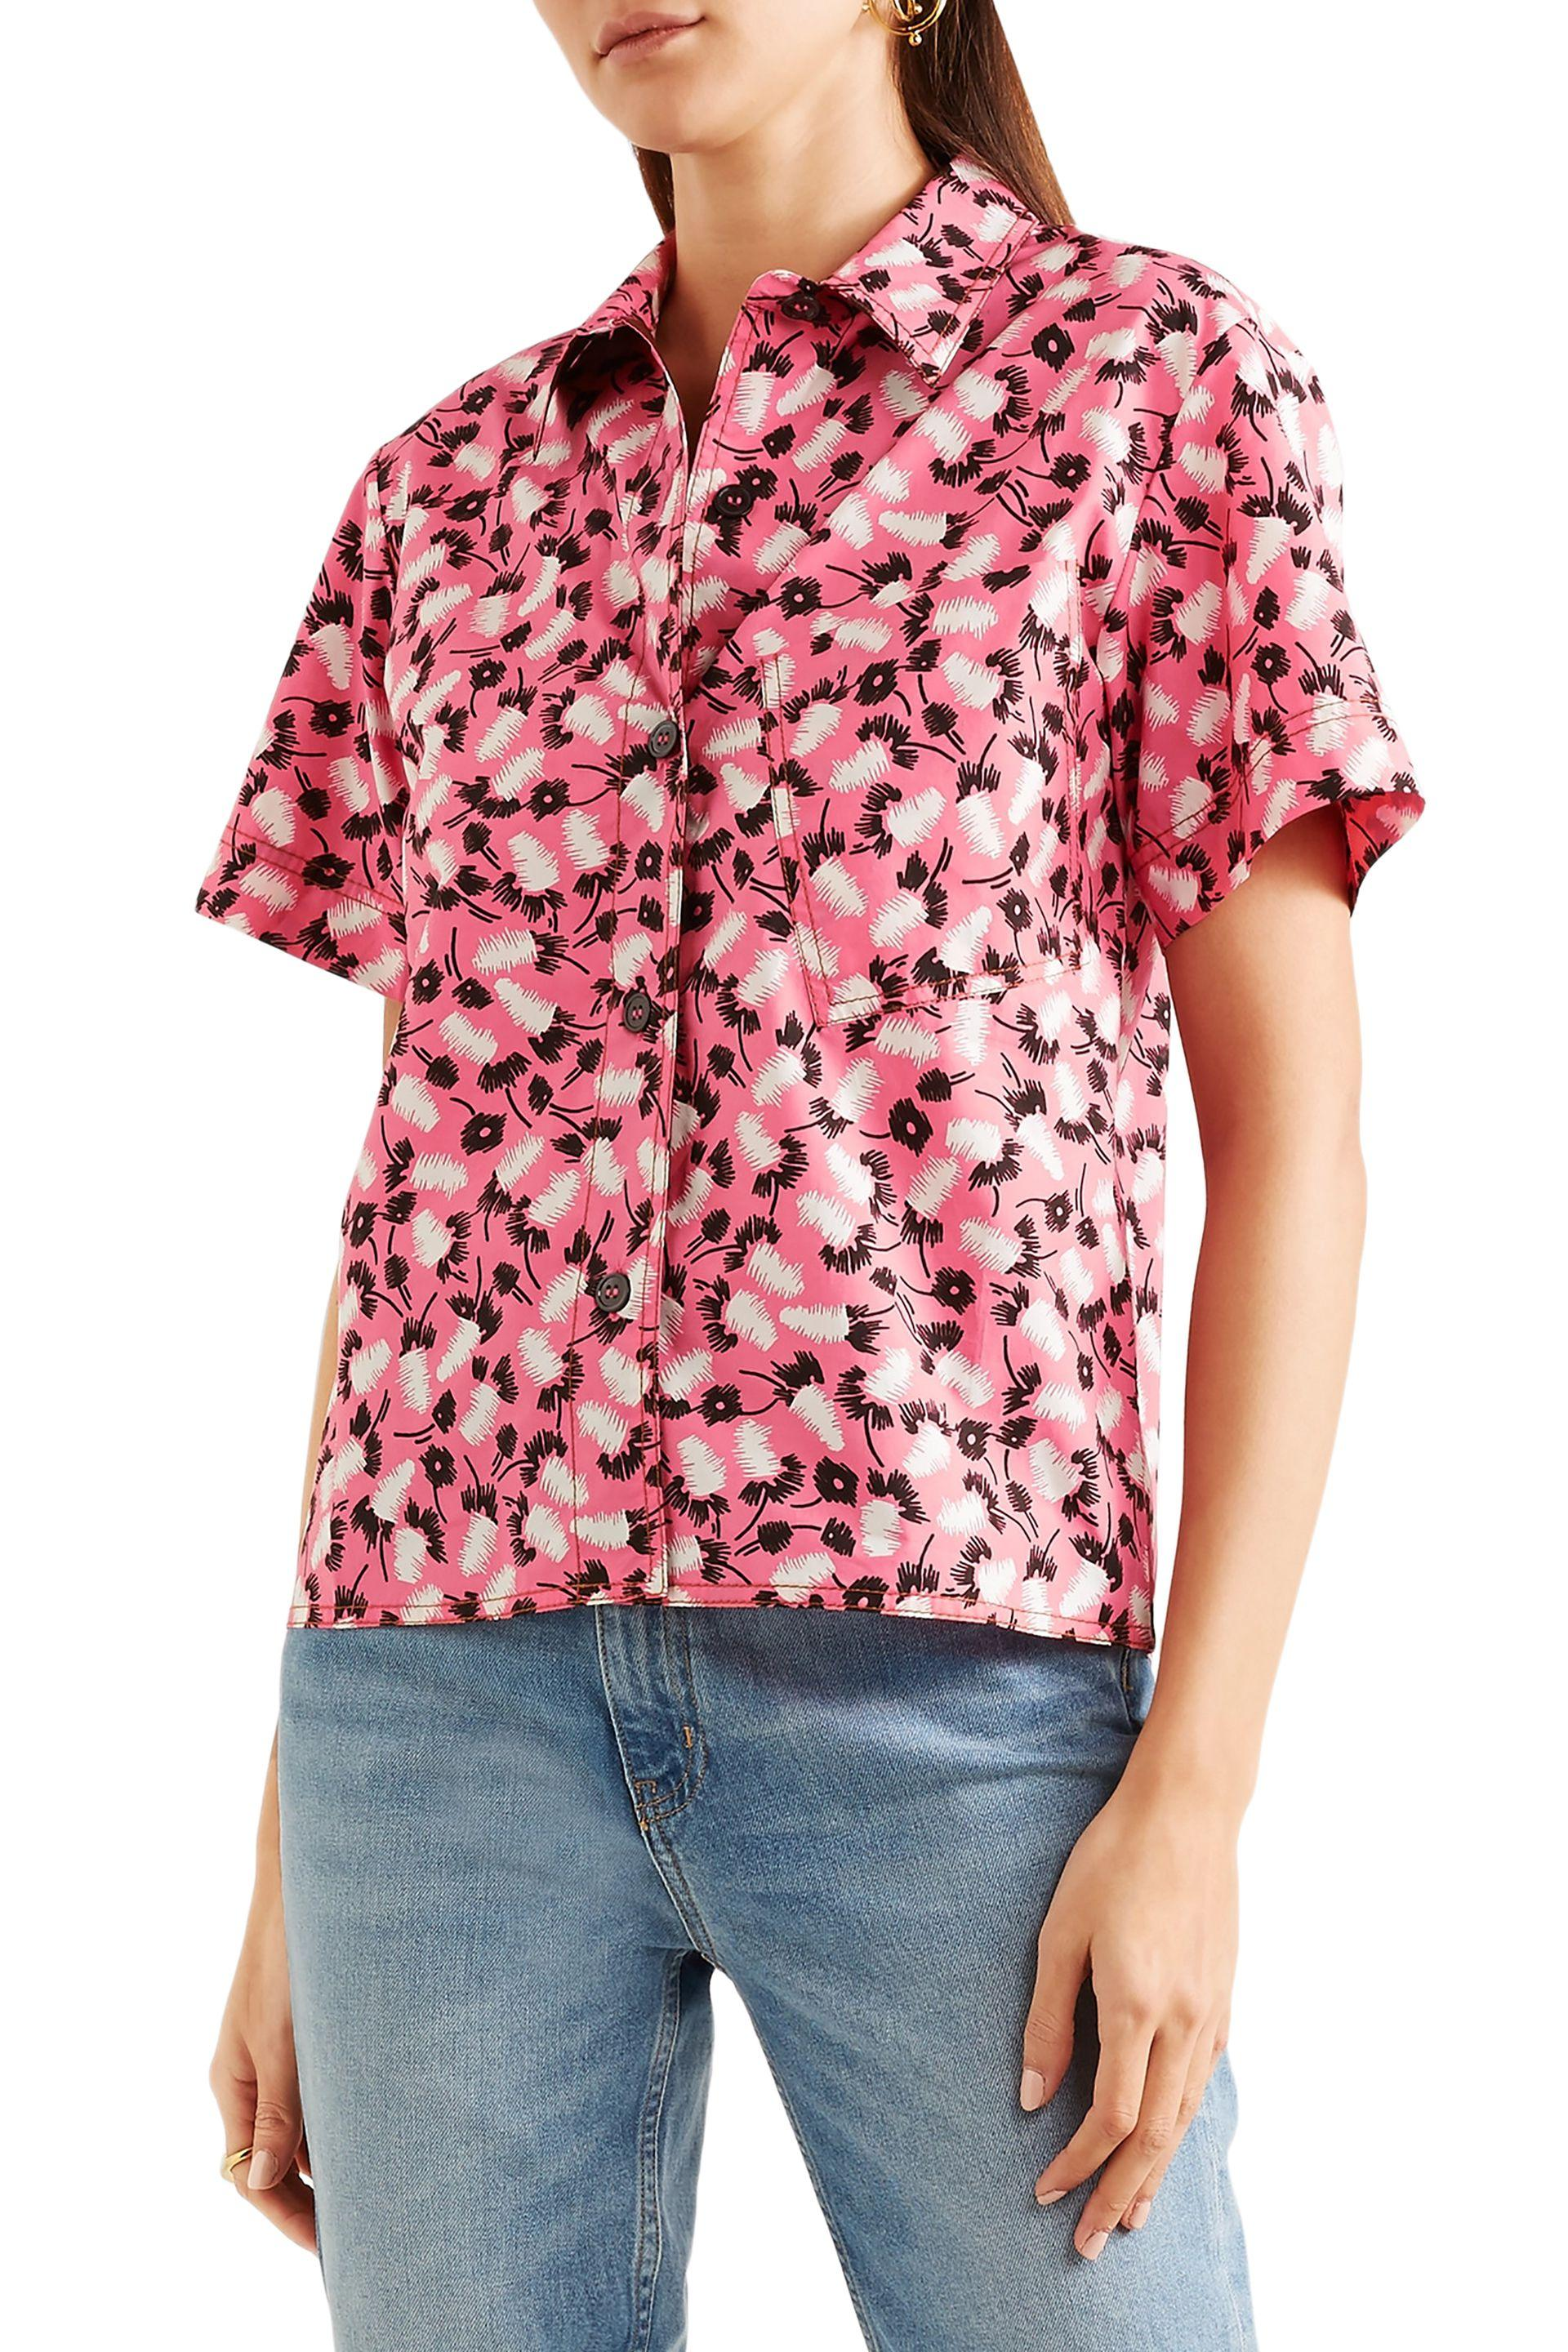 274615e63dca70 Lyst - Marni Woman Printed Cotton-poplin Shirt Pink in Pink - Save 16%